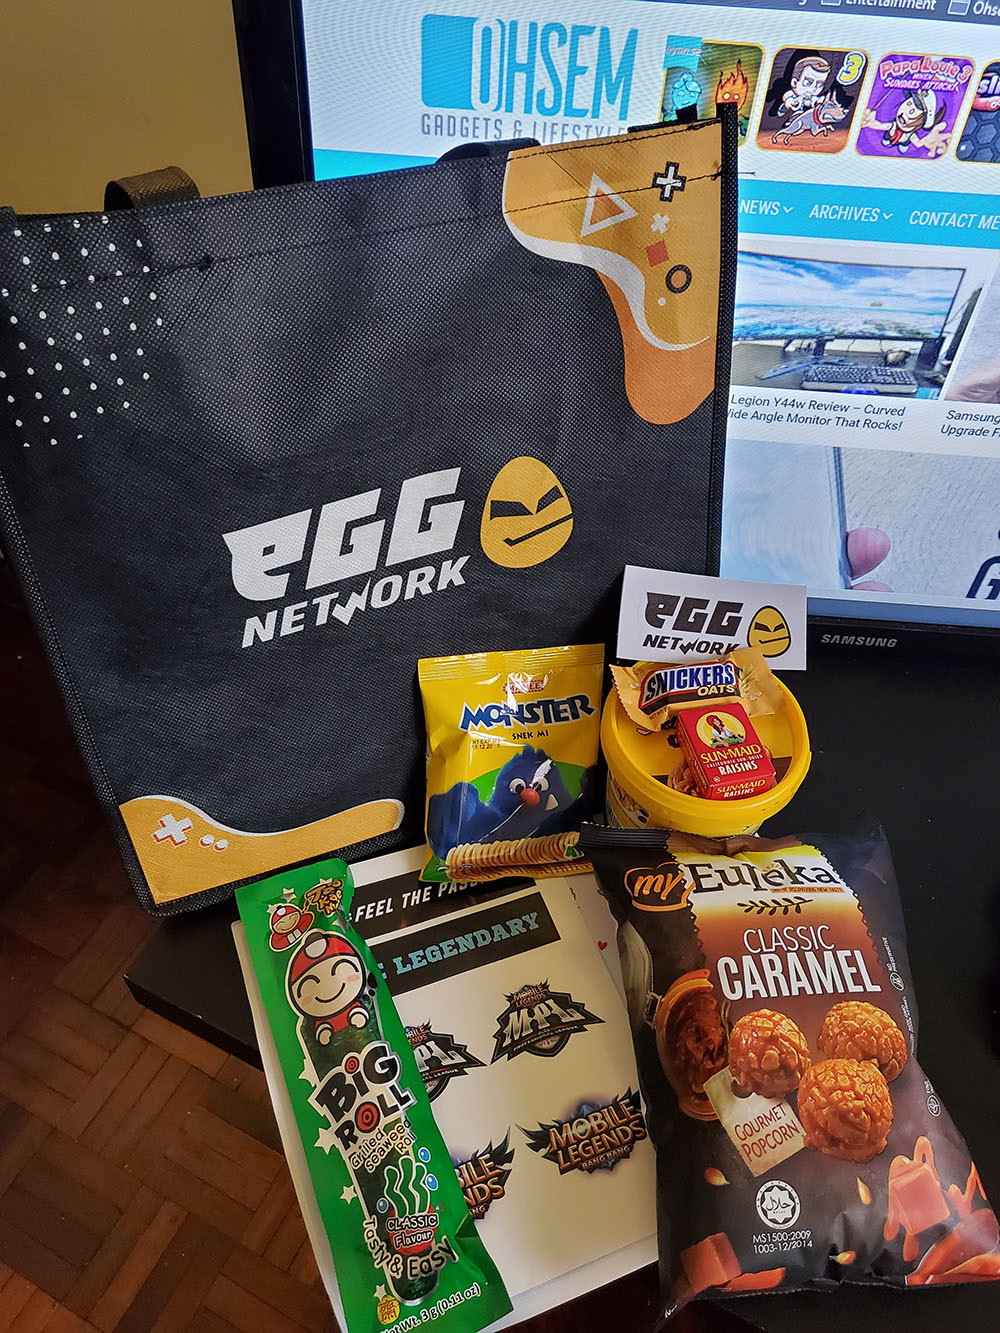 Thank you Hexa Communications and eGG Network